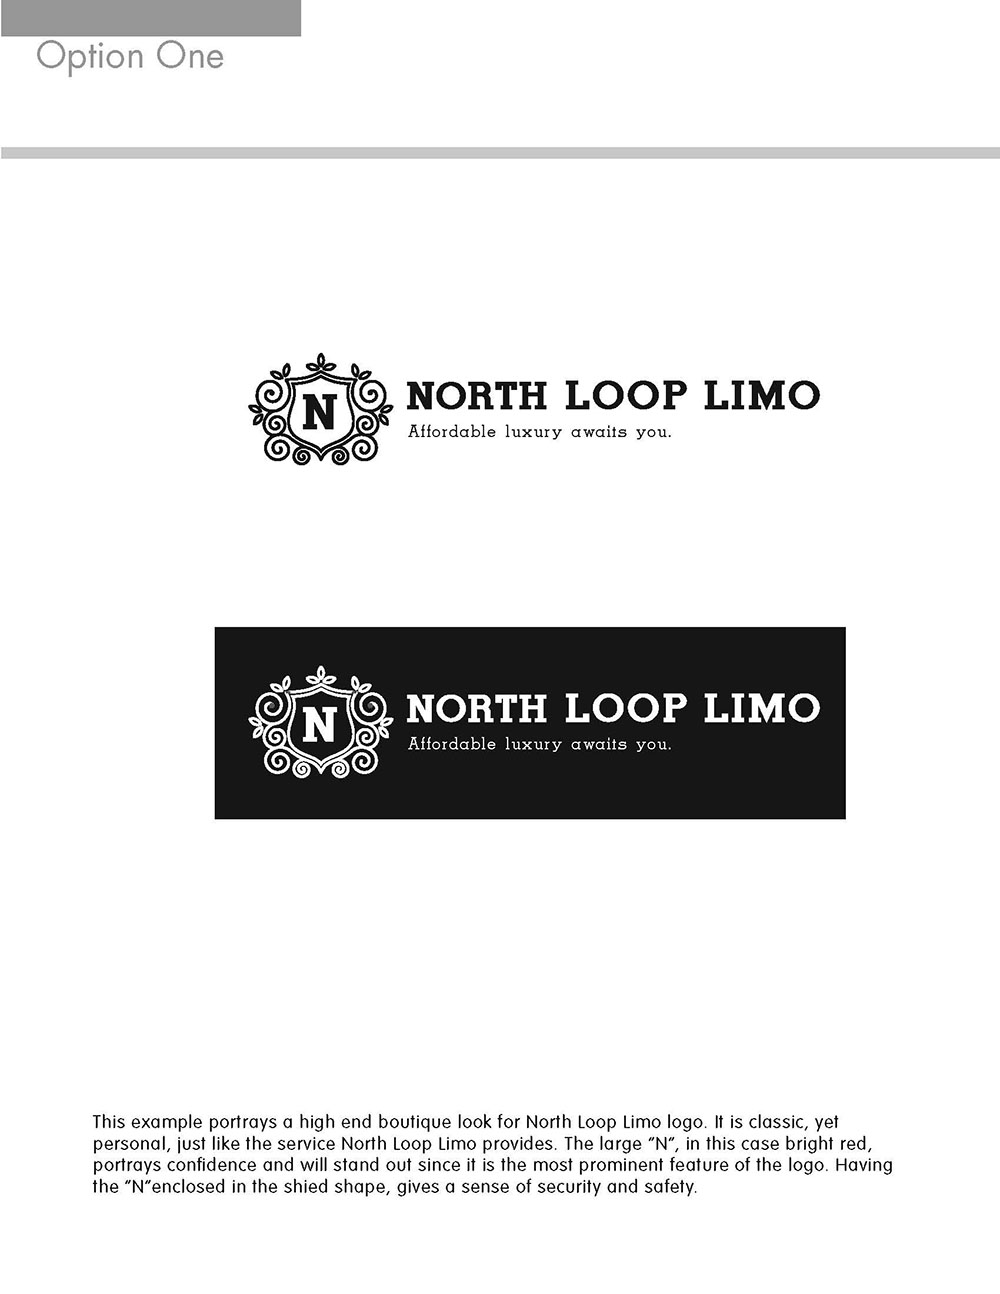 North Loop Limo Black and White